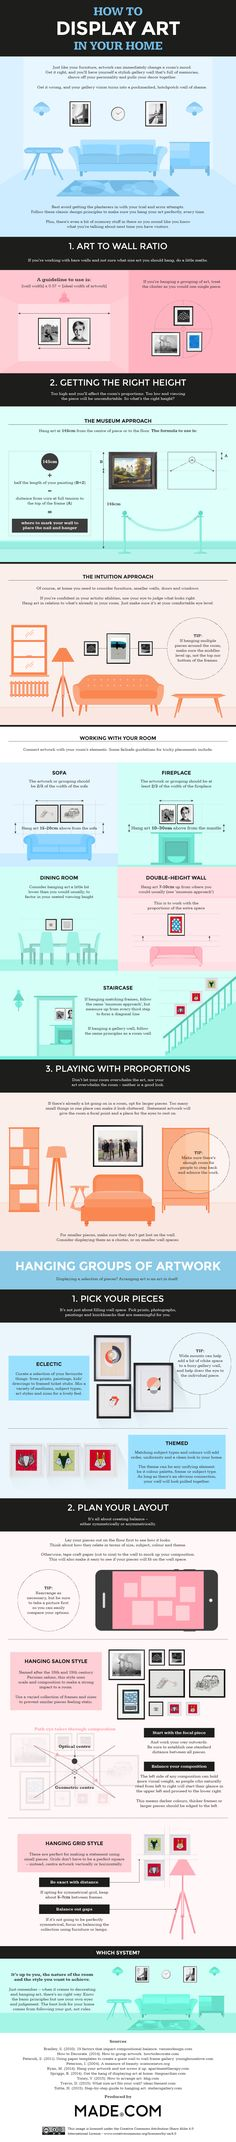 How to display art in your home.